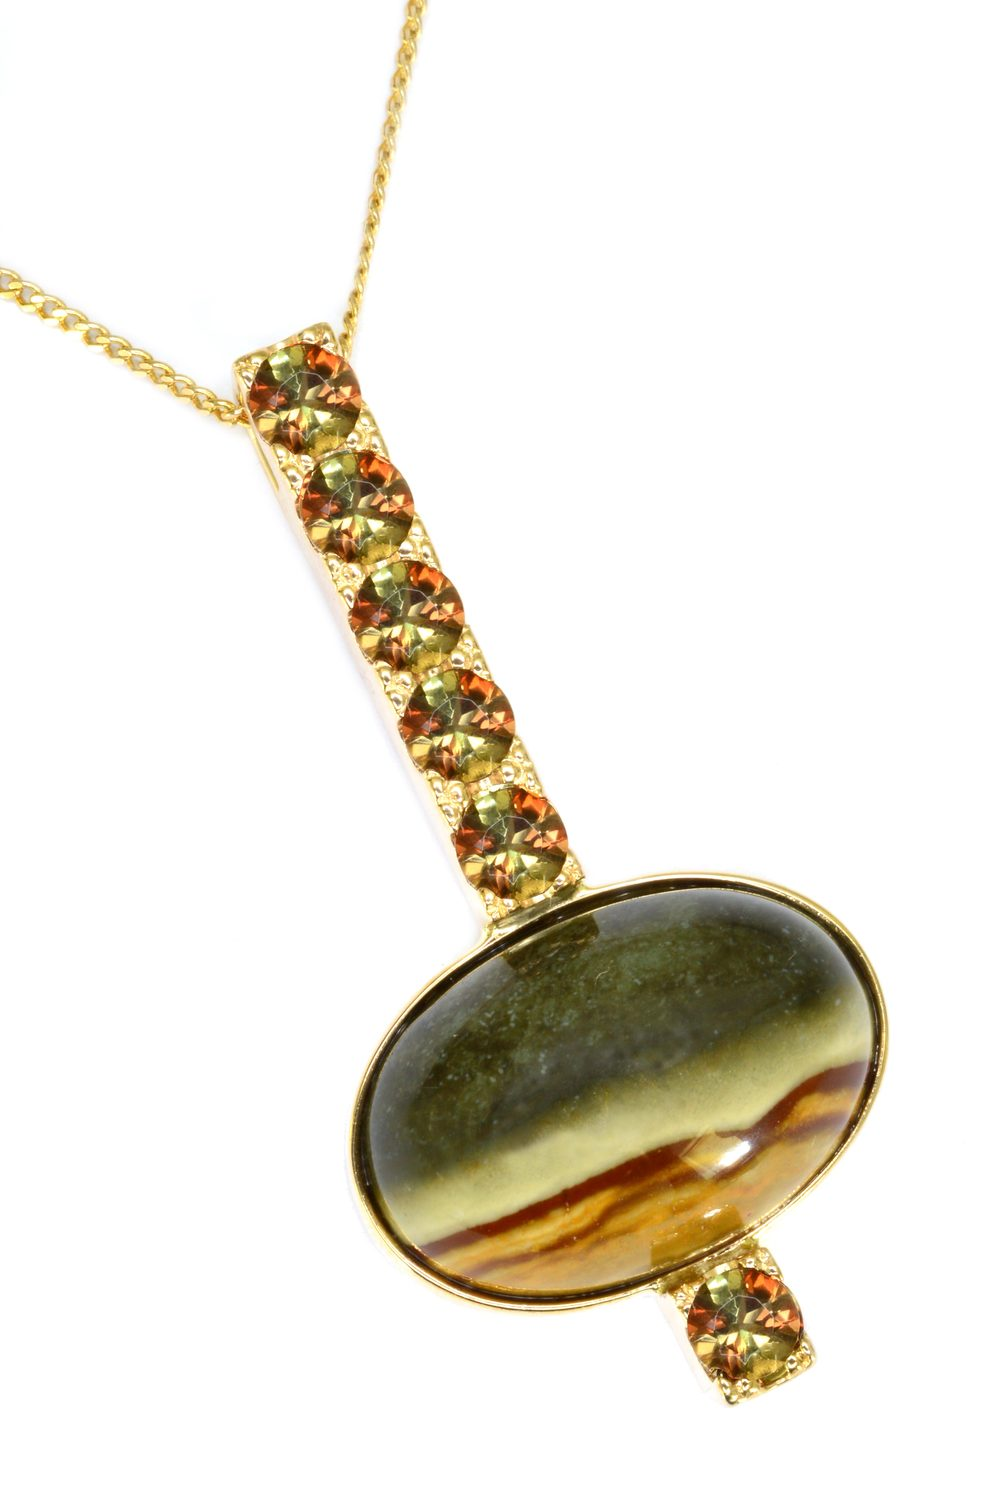 14k yellow gold pendant set with an oval picture jasper, accented by a row of finely matched andalusites, designed by Sharon Curtiss-Gal.